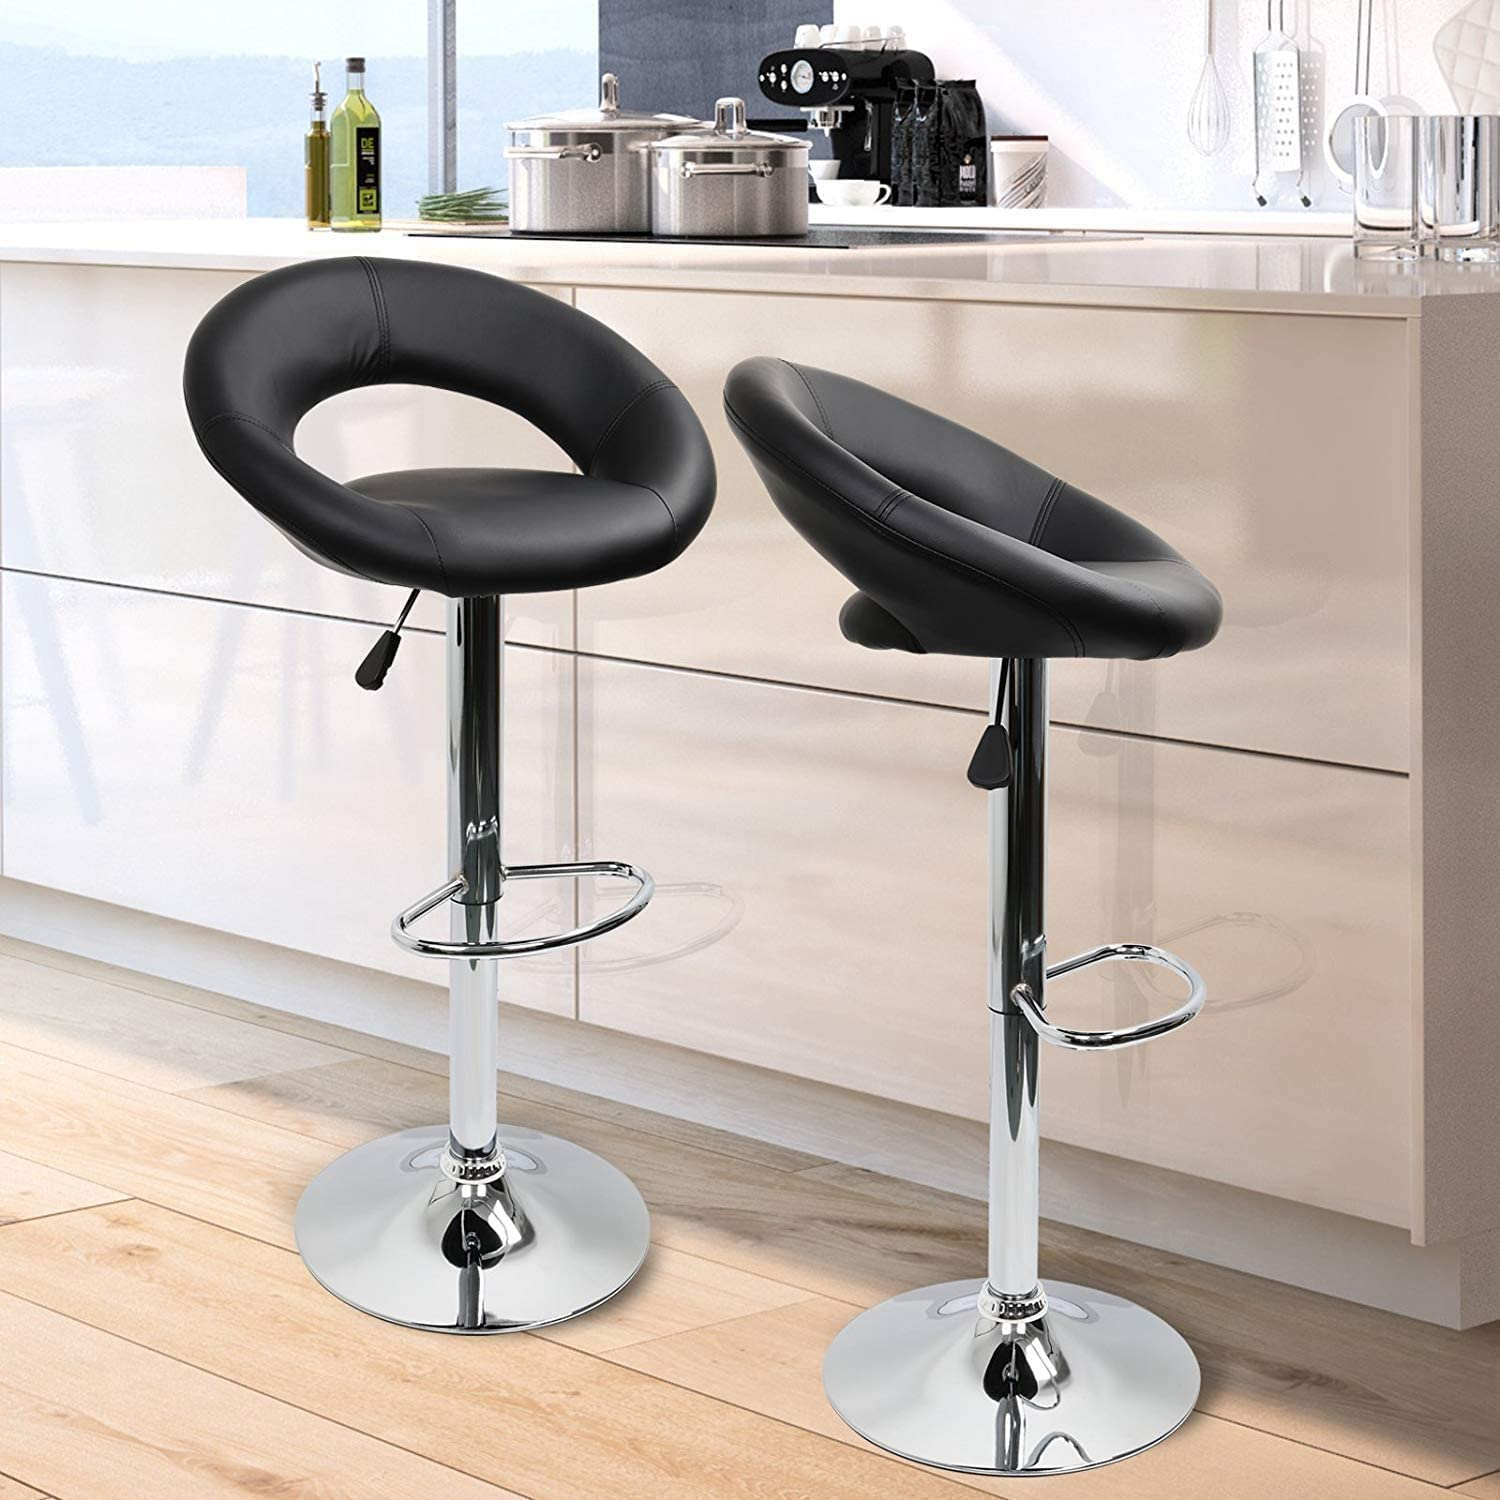 MIFI Bar Stools Set of 2,Faux Leatherr Bar Stools Black Dinning Chairs,Bar Chairs With 360 Degree Swivel Adjustable Height Black